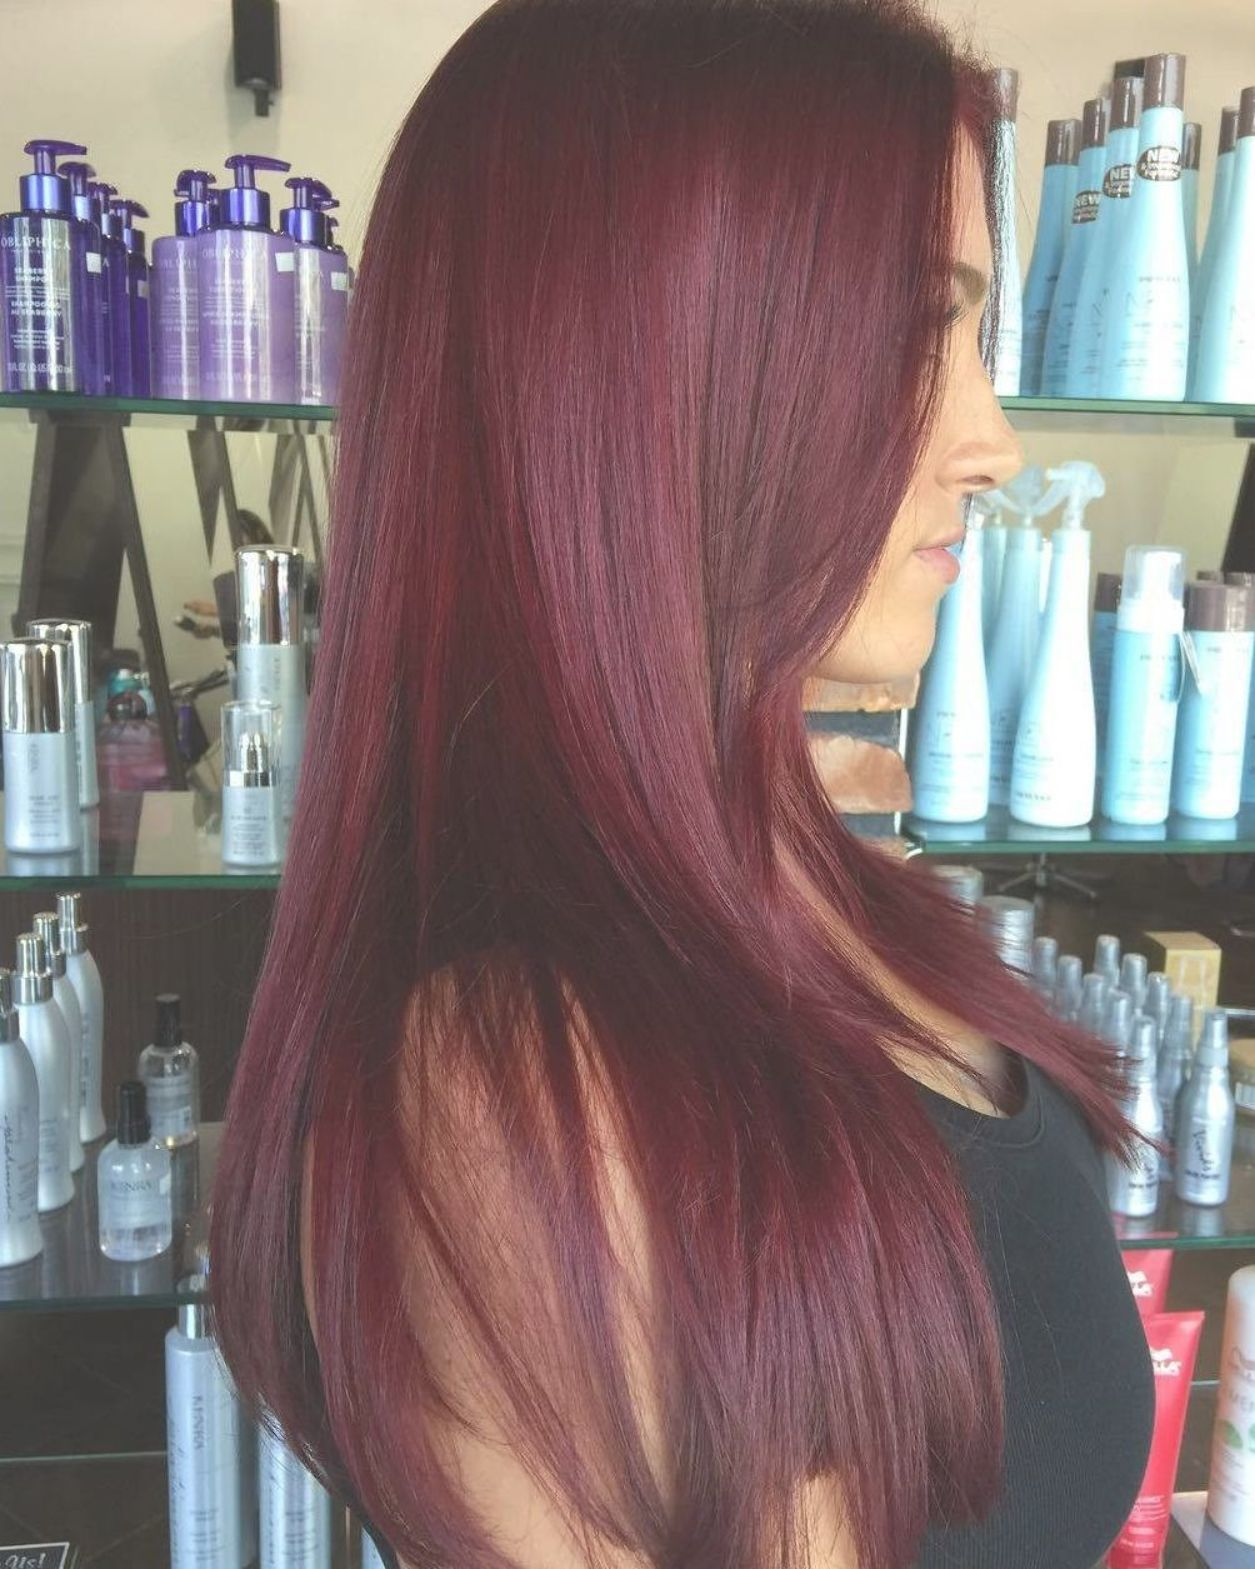 Inspirational Eggplant Hair Color Gallery Of Hair Color Tutorials Plum Hair Color Haircolorsummer Maroon Hair Colors Wine Hair Color Eggplant Colored Hair